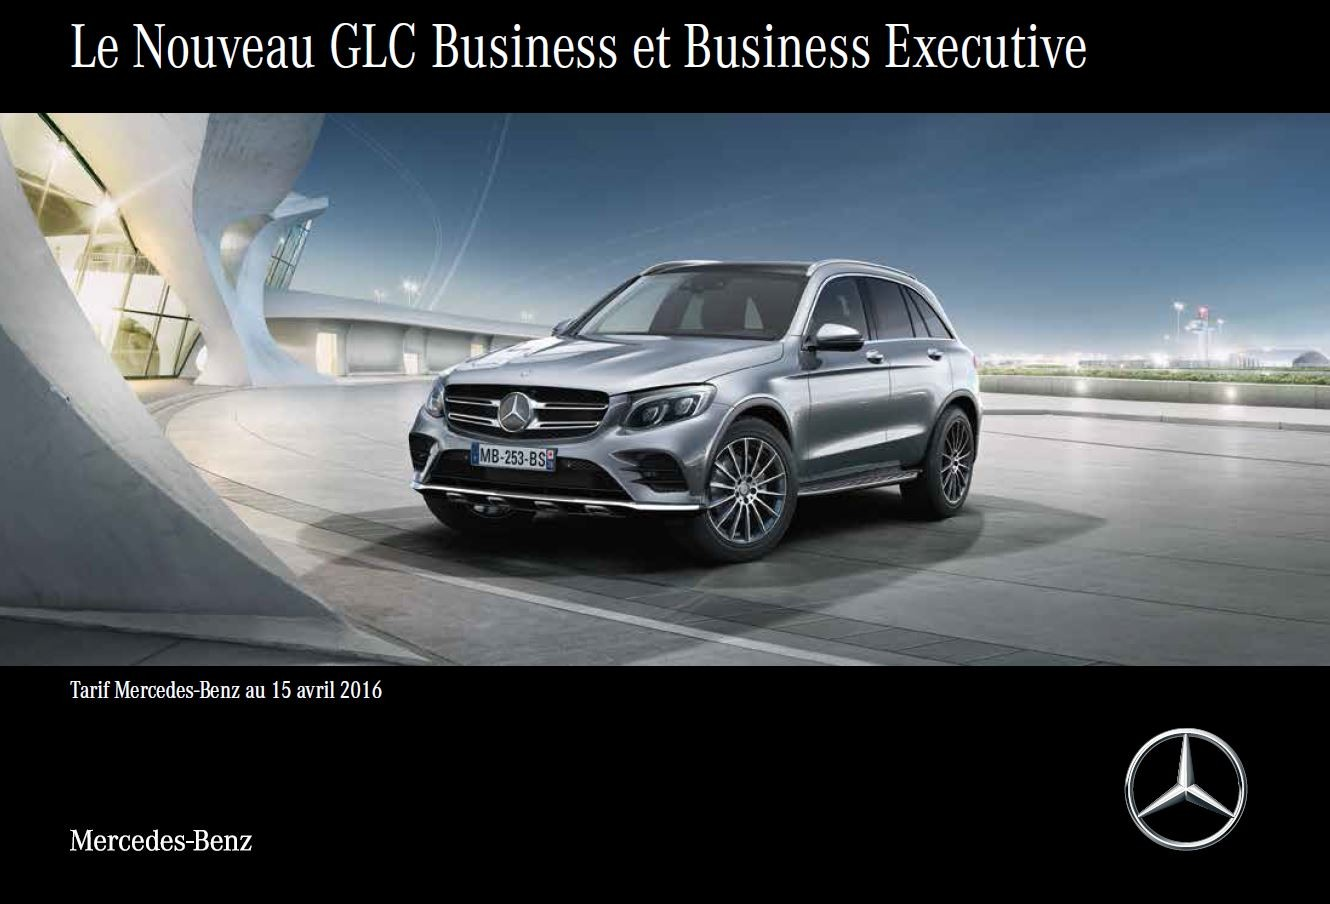 Tarif Nouveau GLC Business et Business Executive au 15 avril 2016